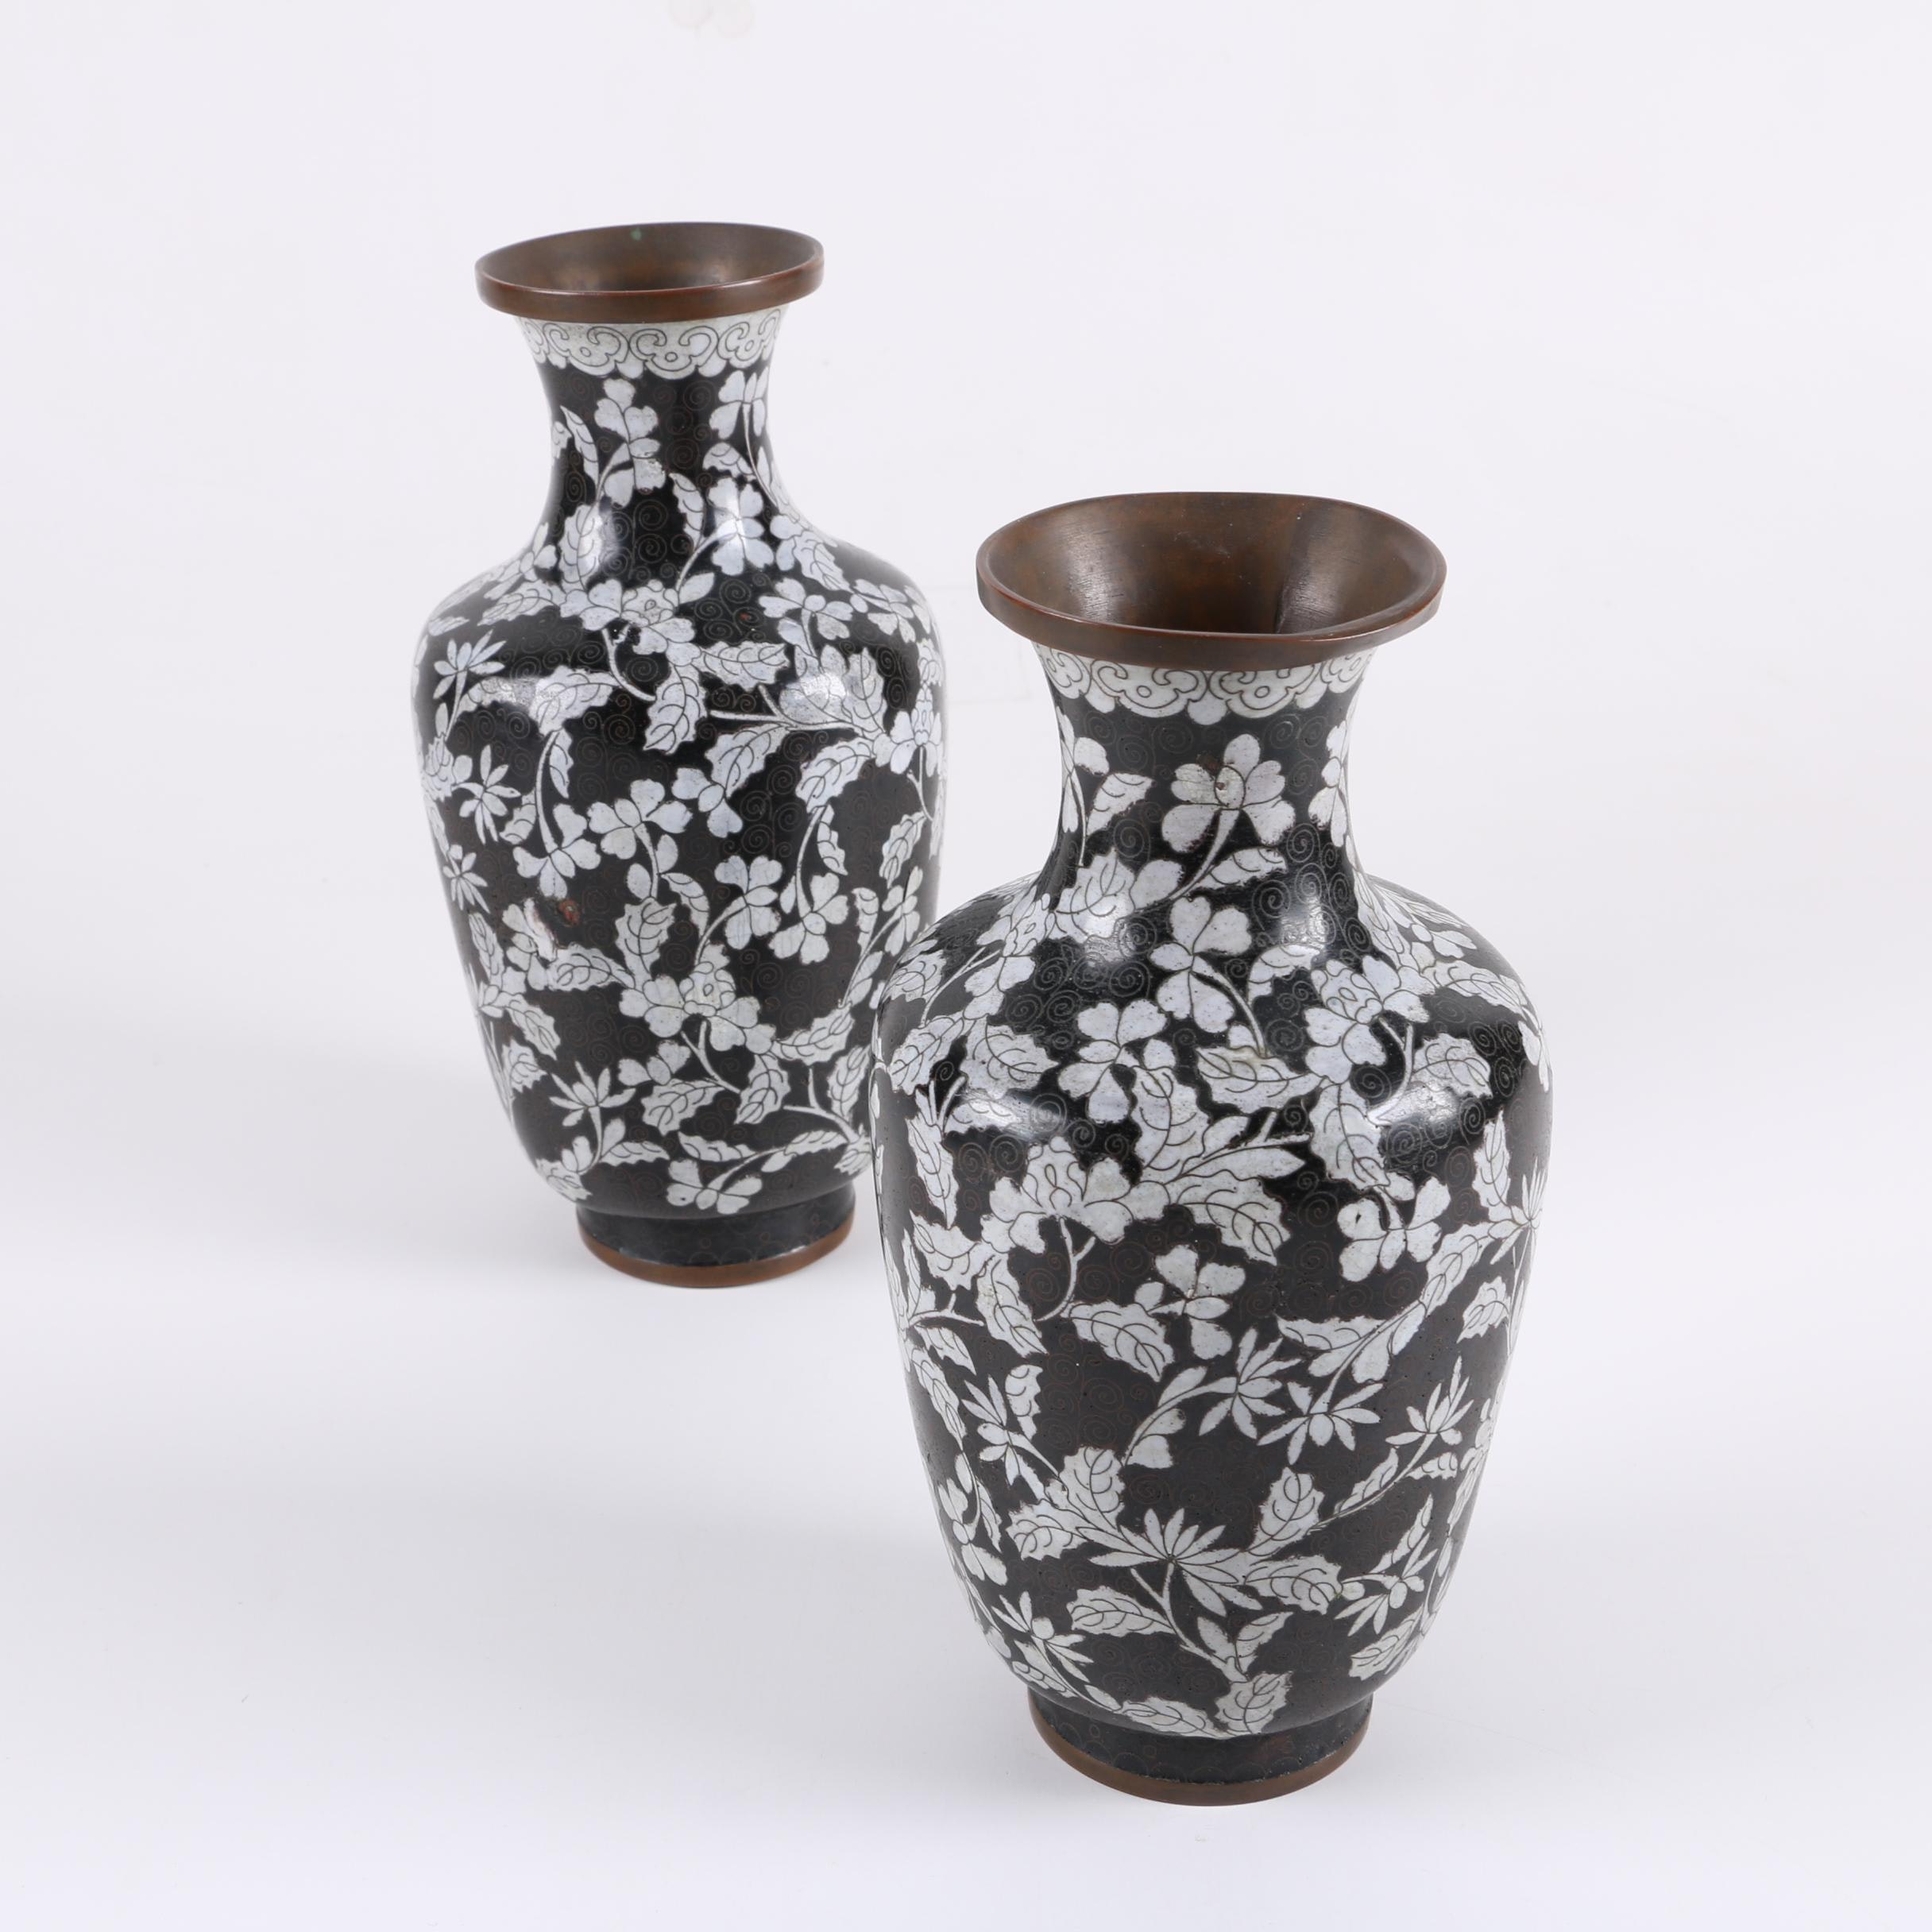 Chinese  Black and White Cloisonné Vases